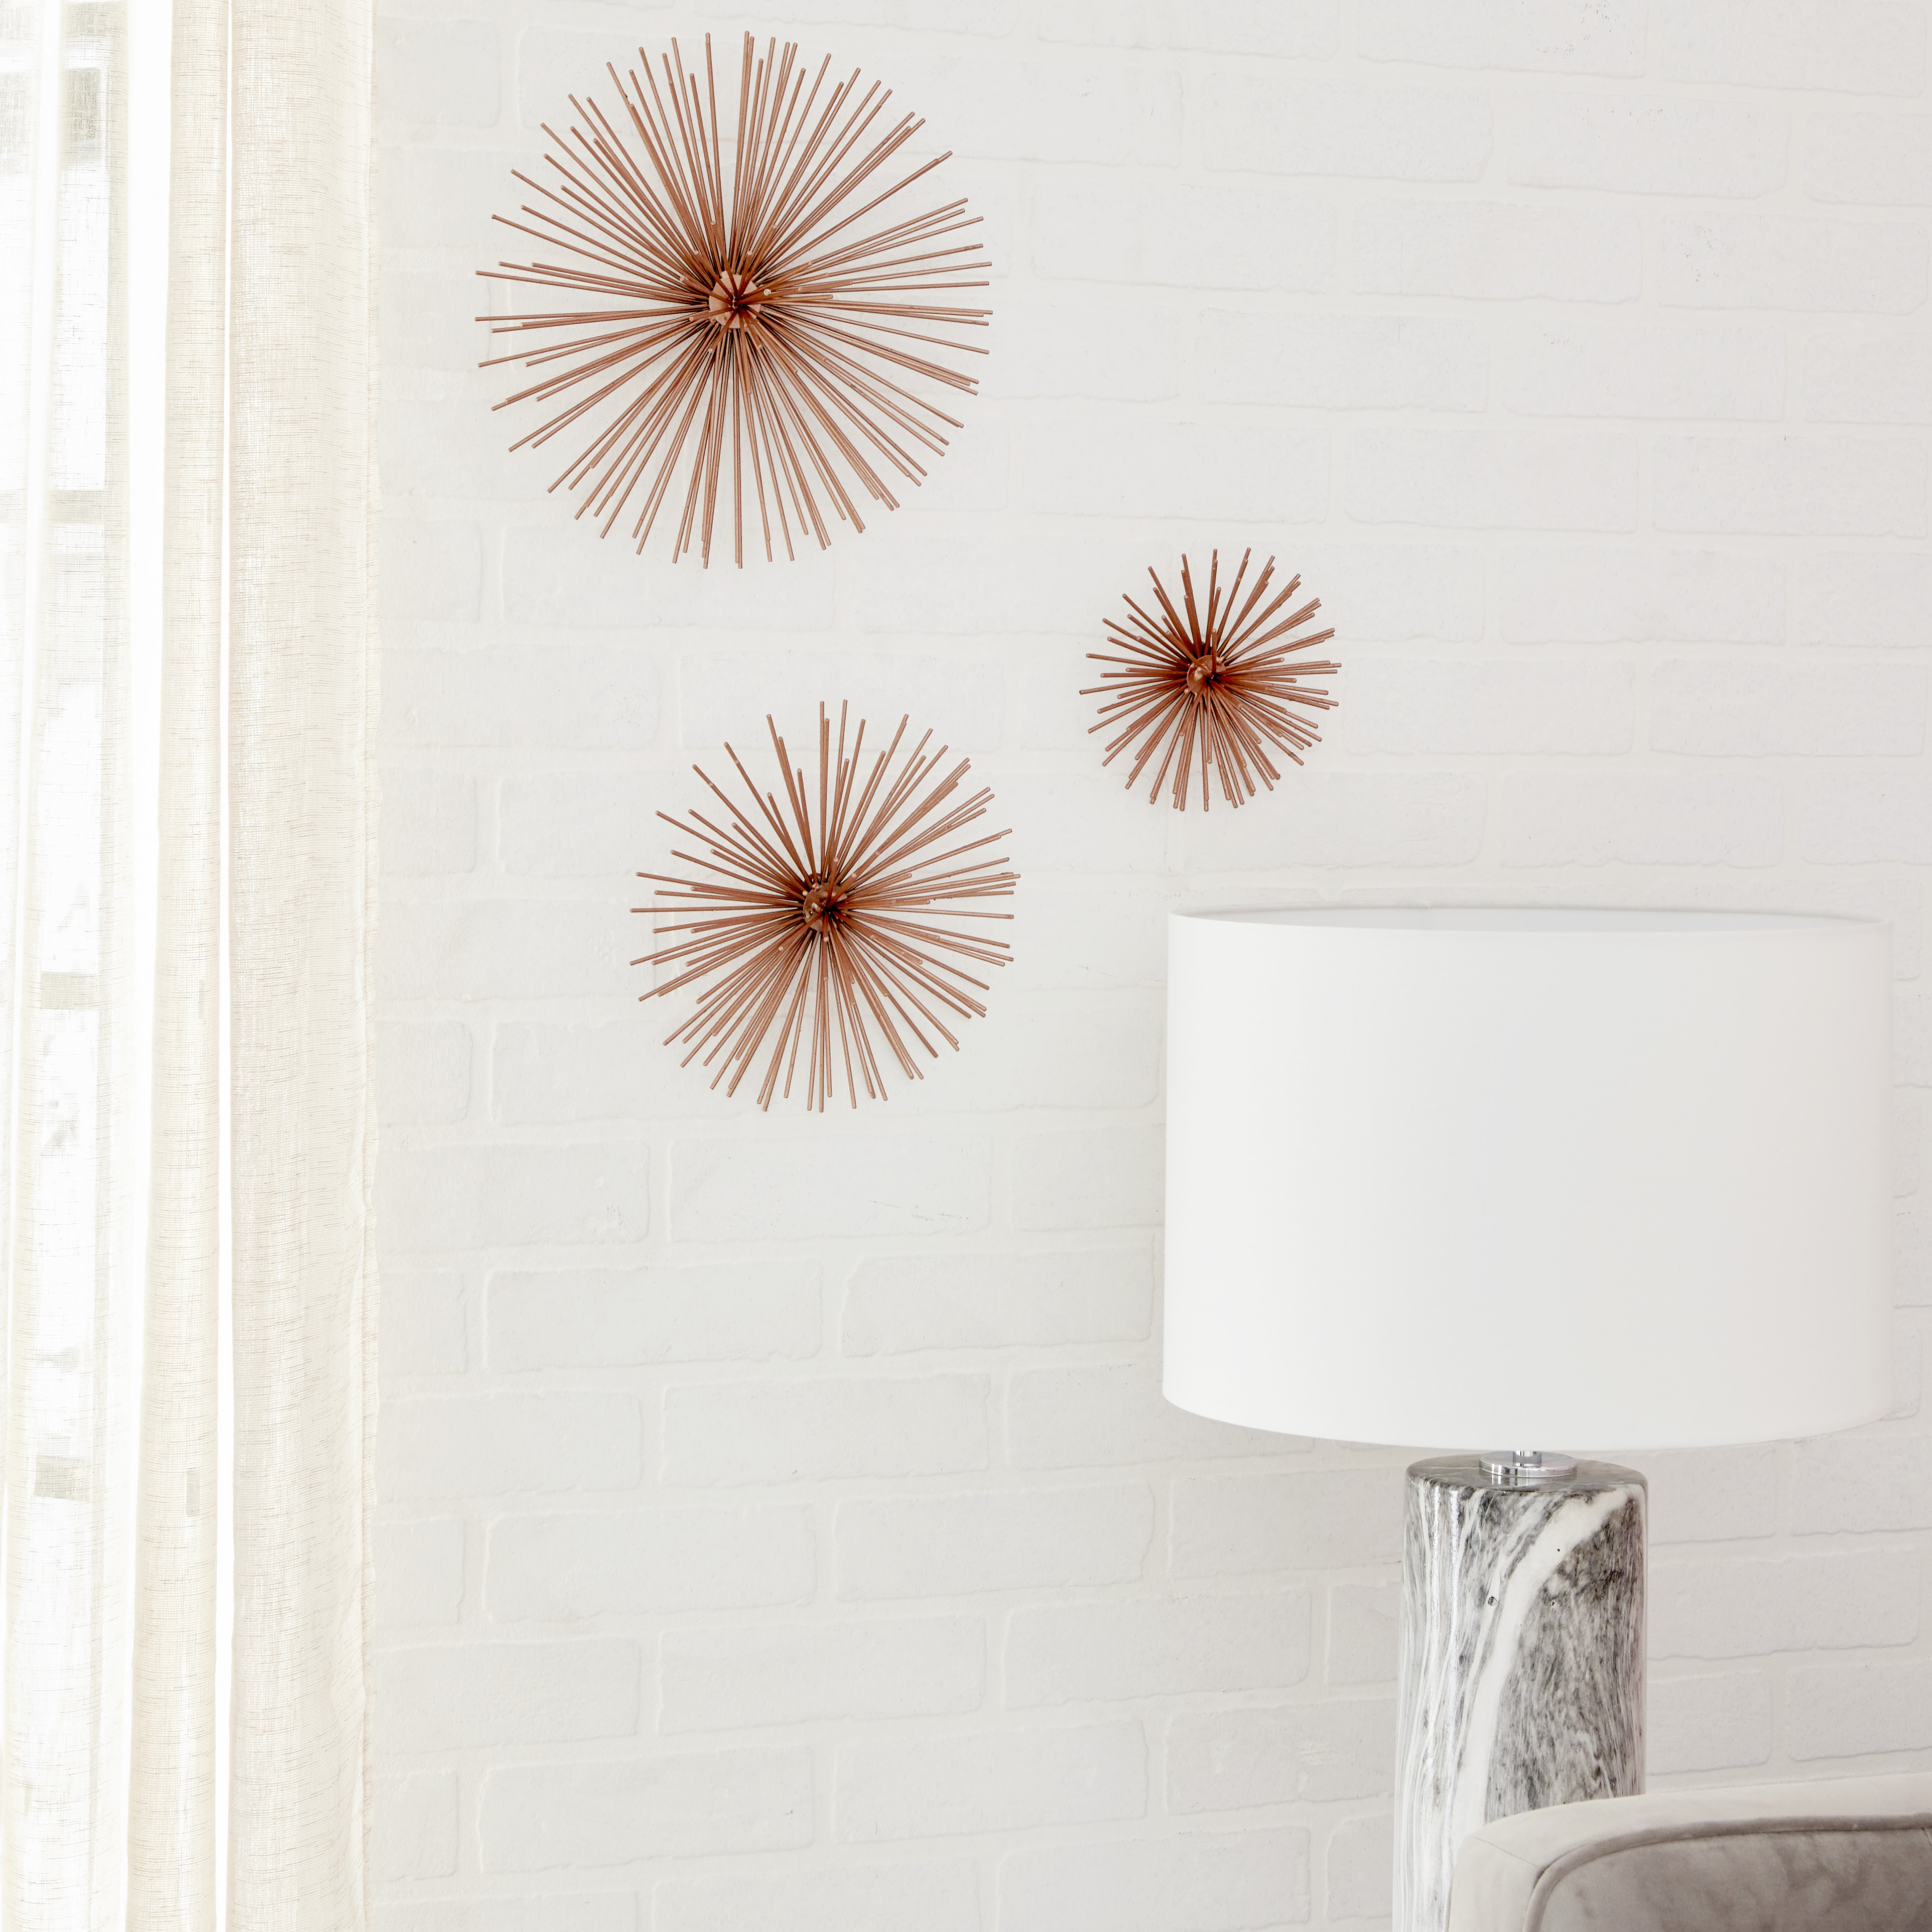 2019 Cosmoliving Contemporary Style 3D Round Copper Metal Starburst Wall With Metal Wall Decor By Cosmoliving (View 1 of 20)